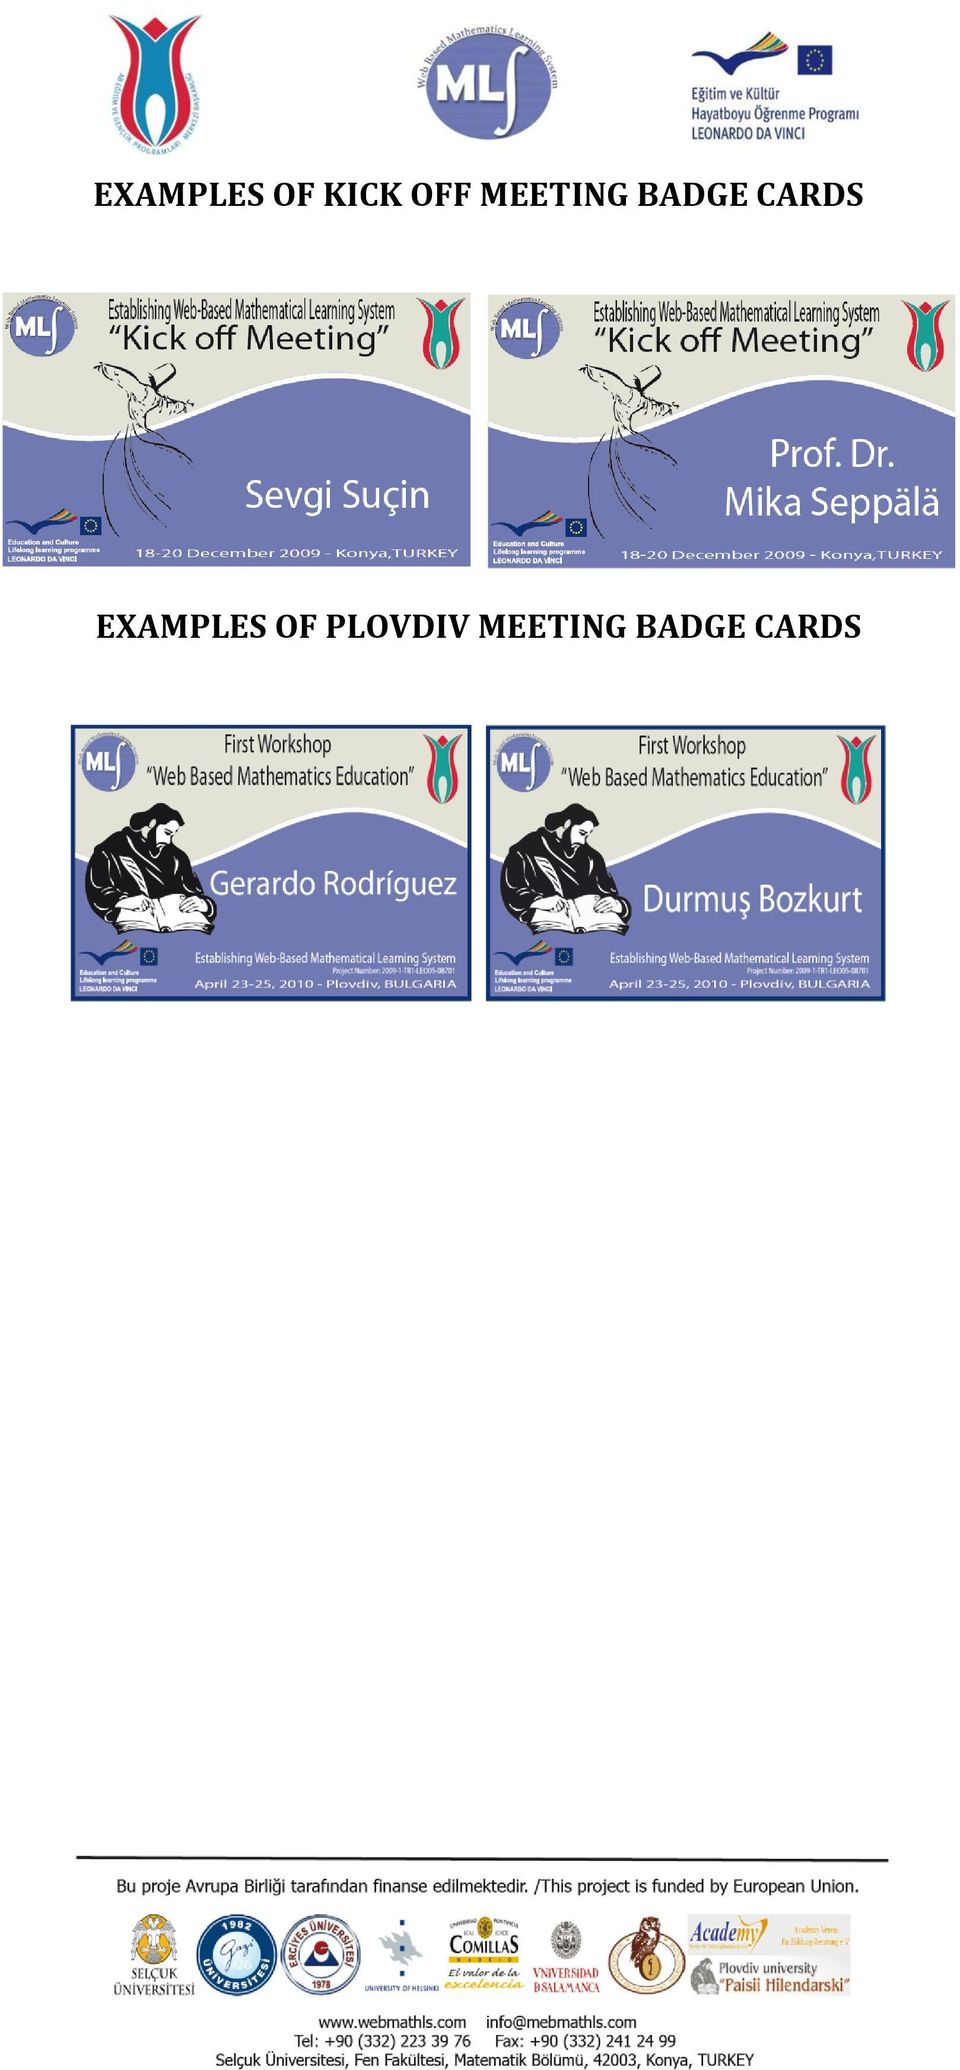 CARDS EXAMPLES OF